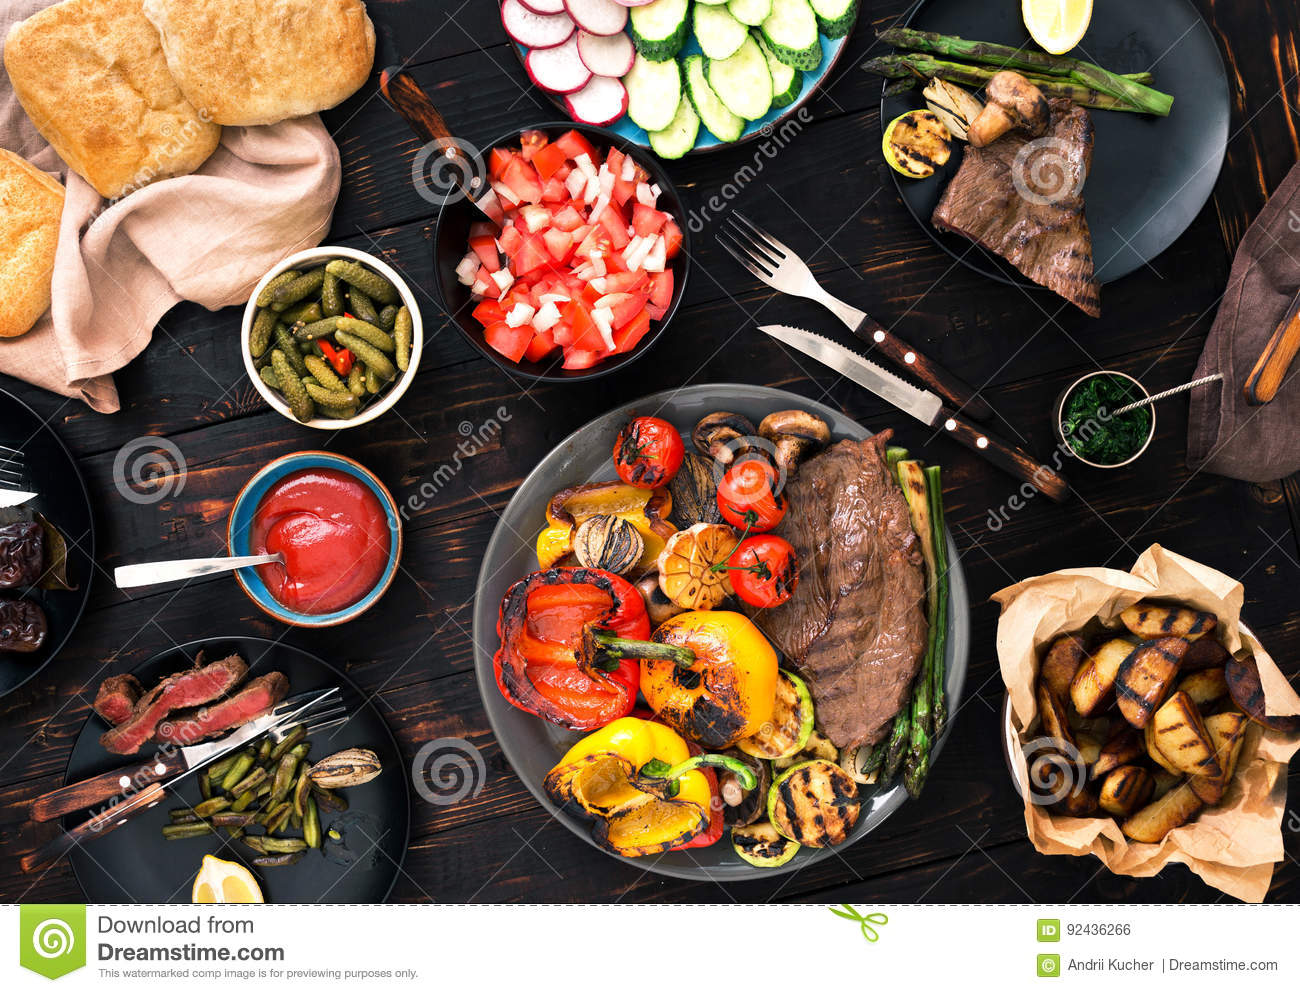 Grill steak and grilled vegetables on the wooden table